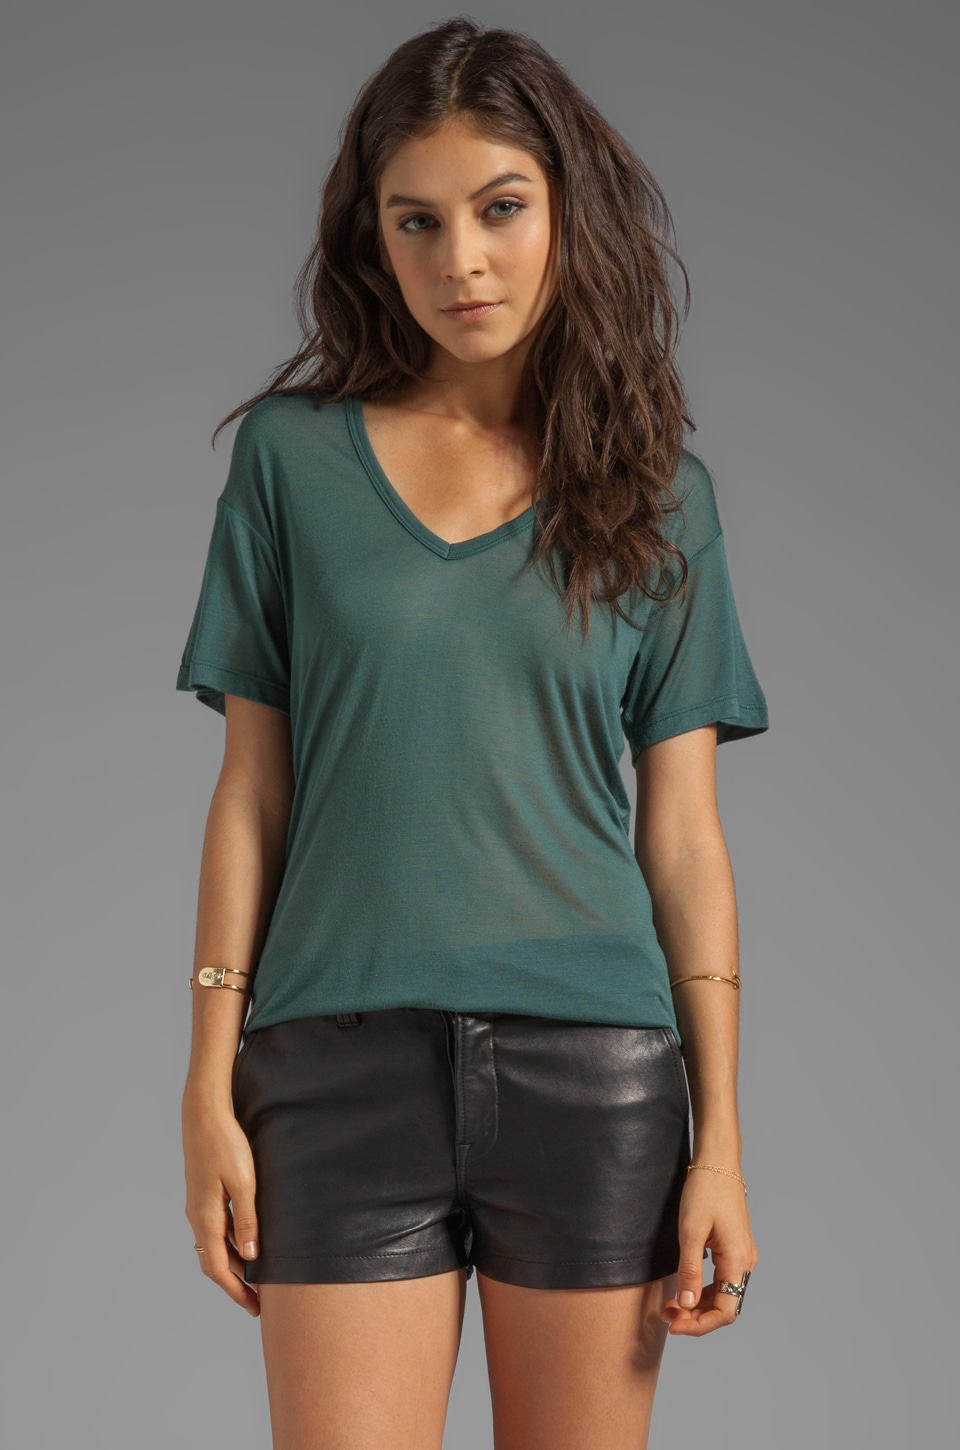 Kain Sheer Jersey Classic V Neck in Pine Green